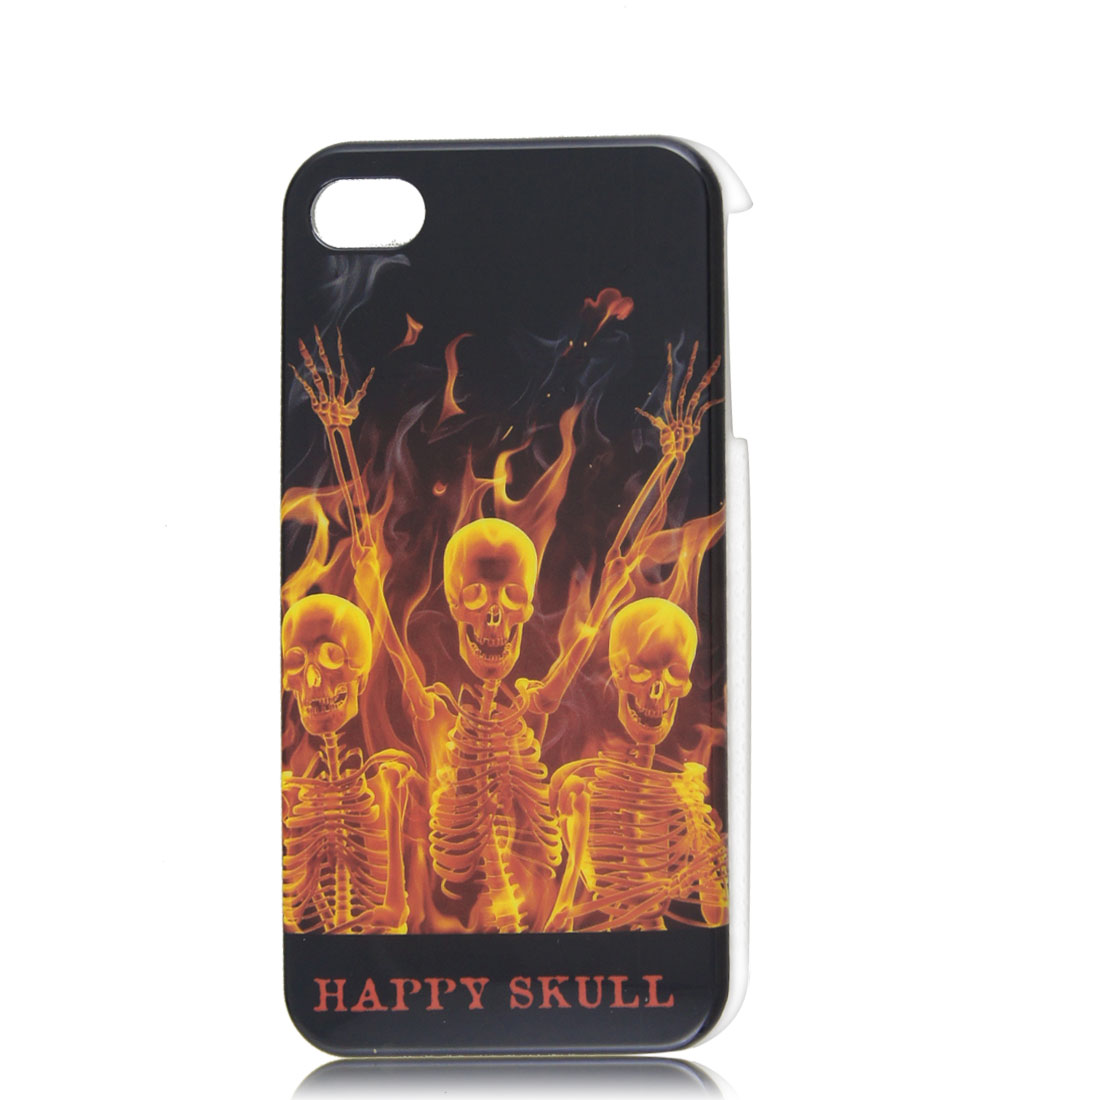 Yellow Orange Skulls Hard IMD Case Cover for Apple iPhone 4 4G 4S 4GS